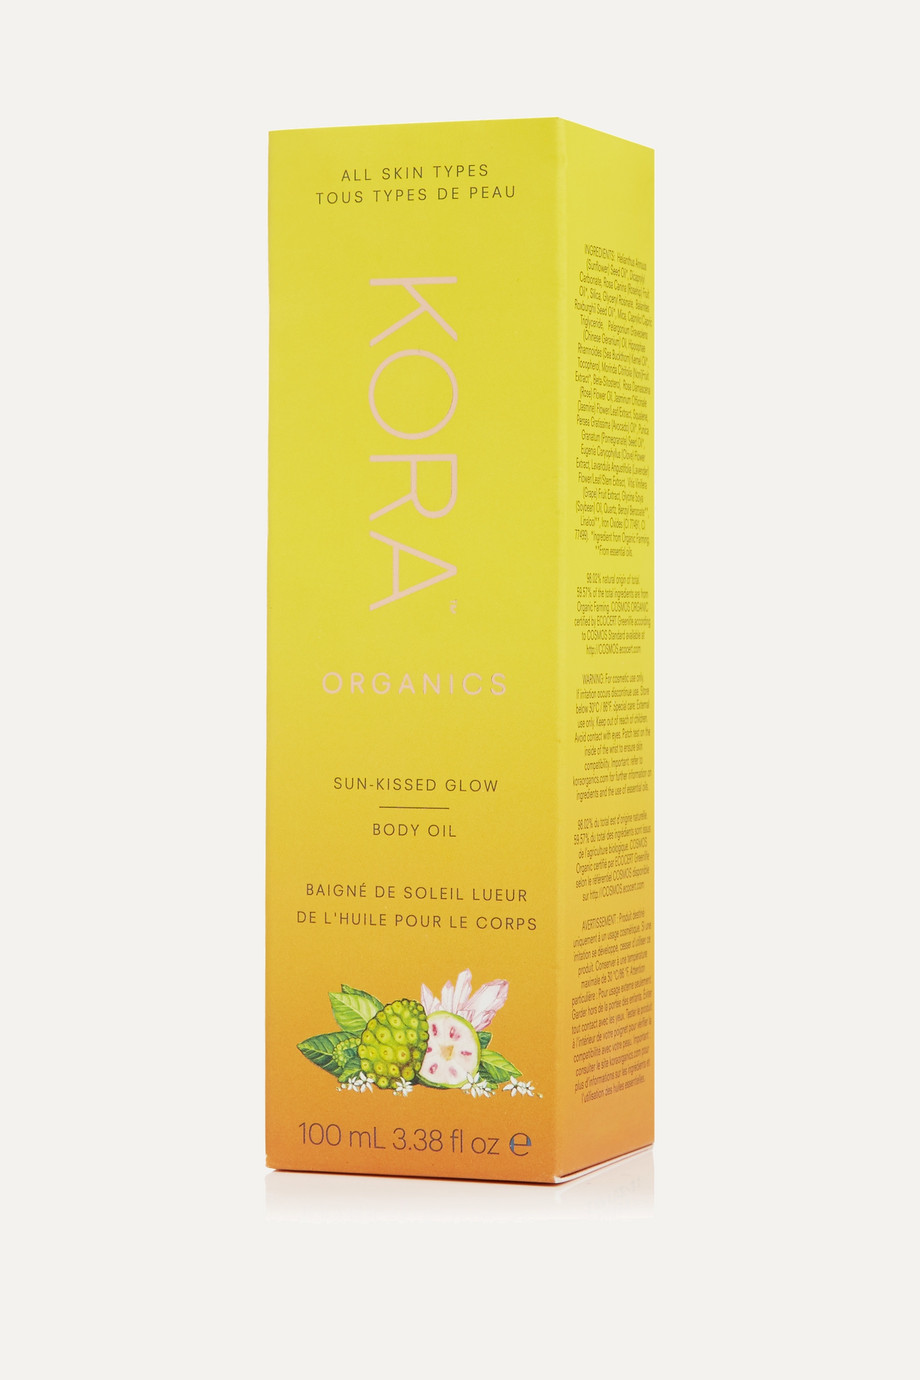 KORA Organics Sunkissed Glow Body Oil, 100ml